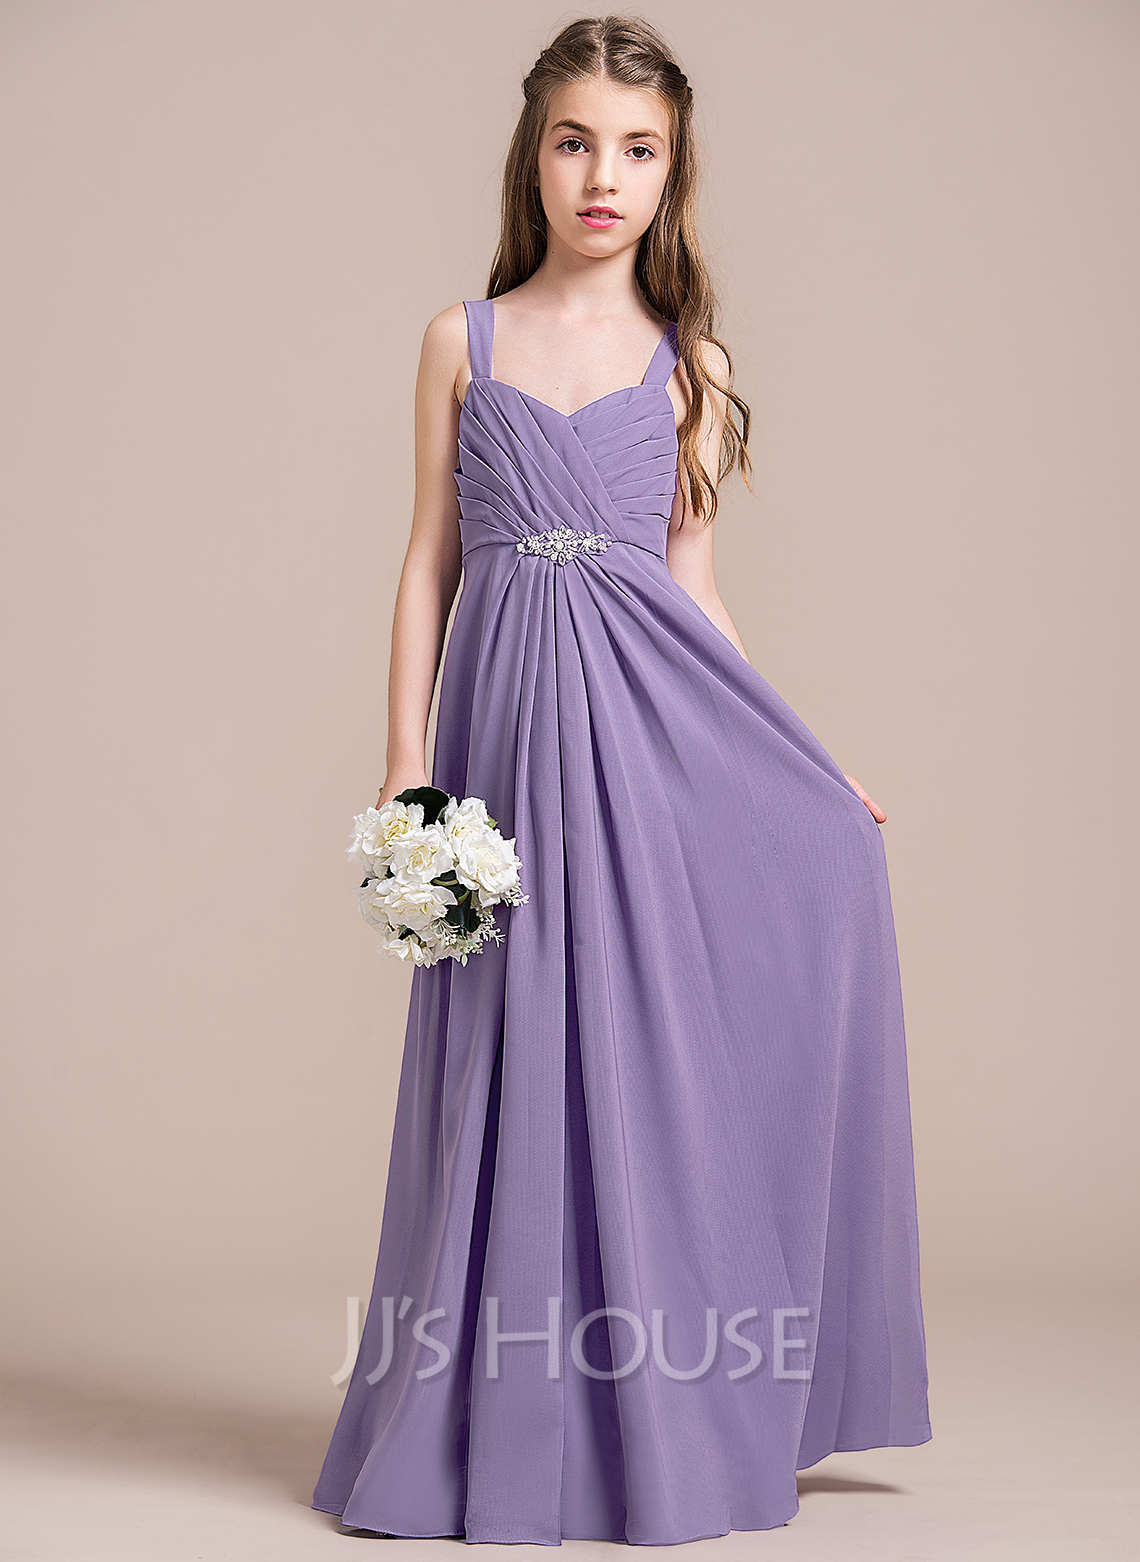 A-Line Sweetheart Floor-Length Chiffon Junior Bridesmaid Dress With Ruffle Beading